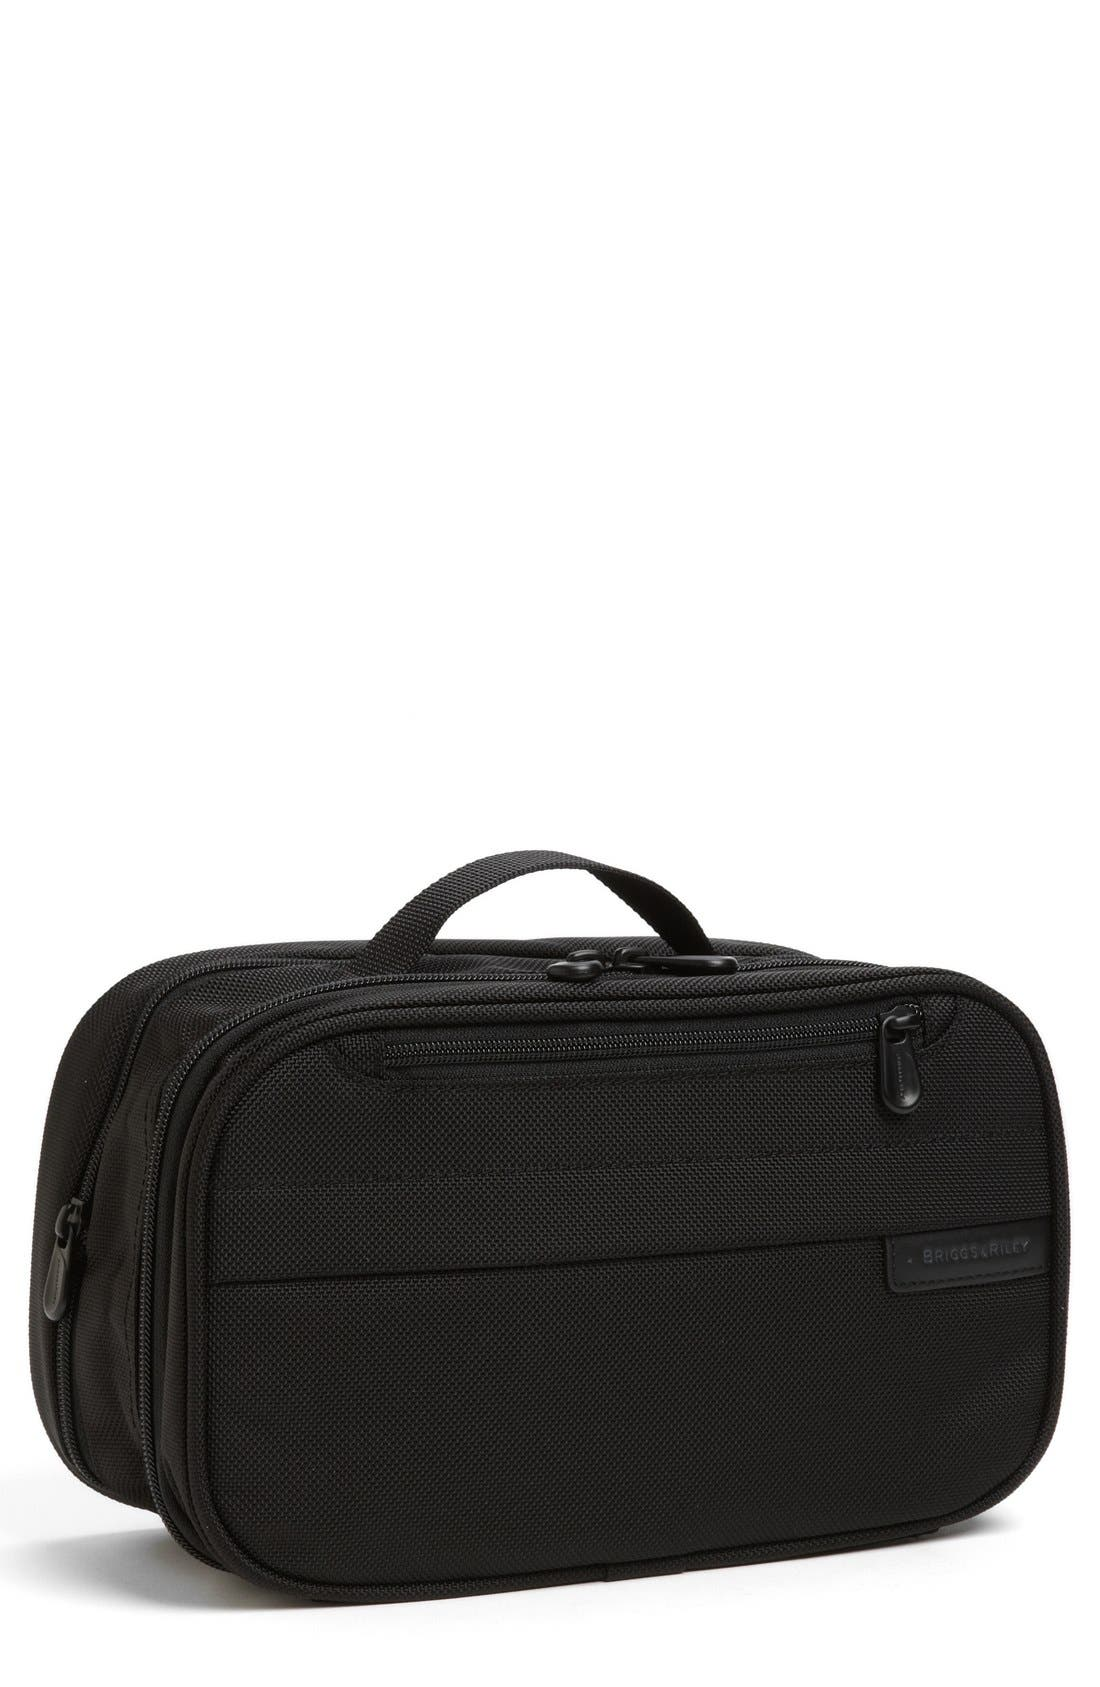 Briggs & Riley 'Baseline' Expandable Toiletry Kit